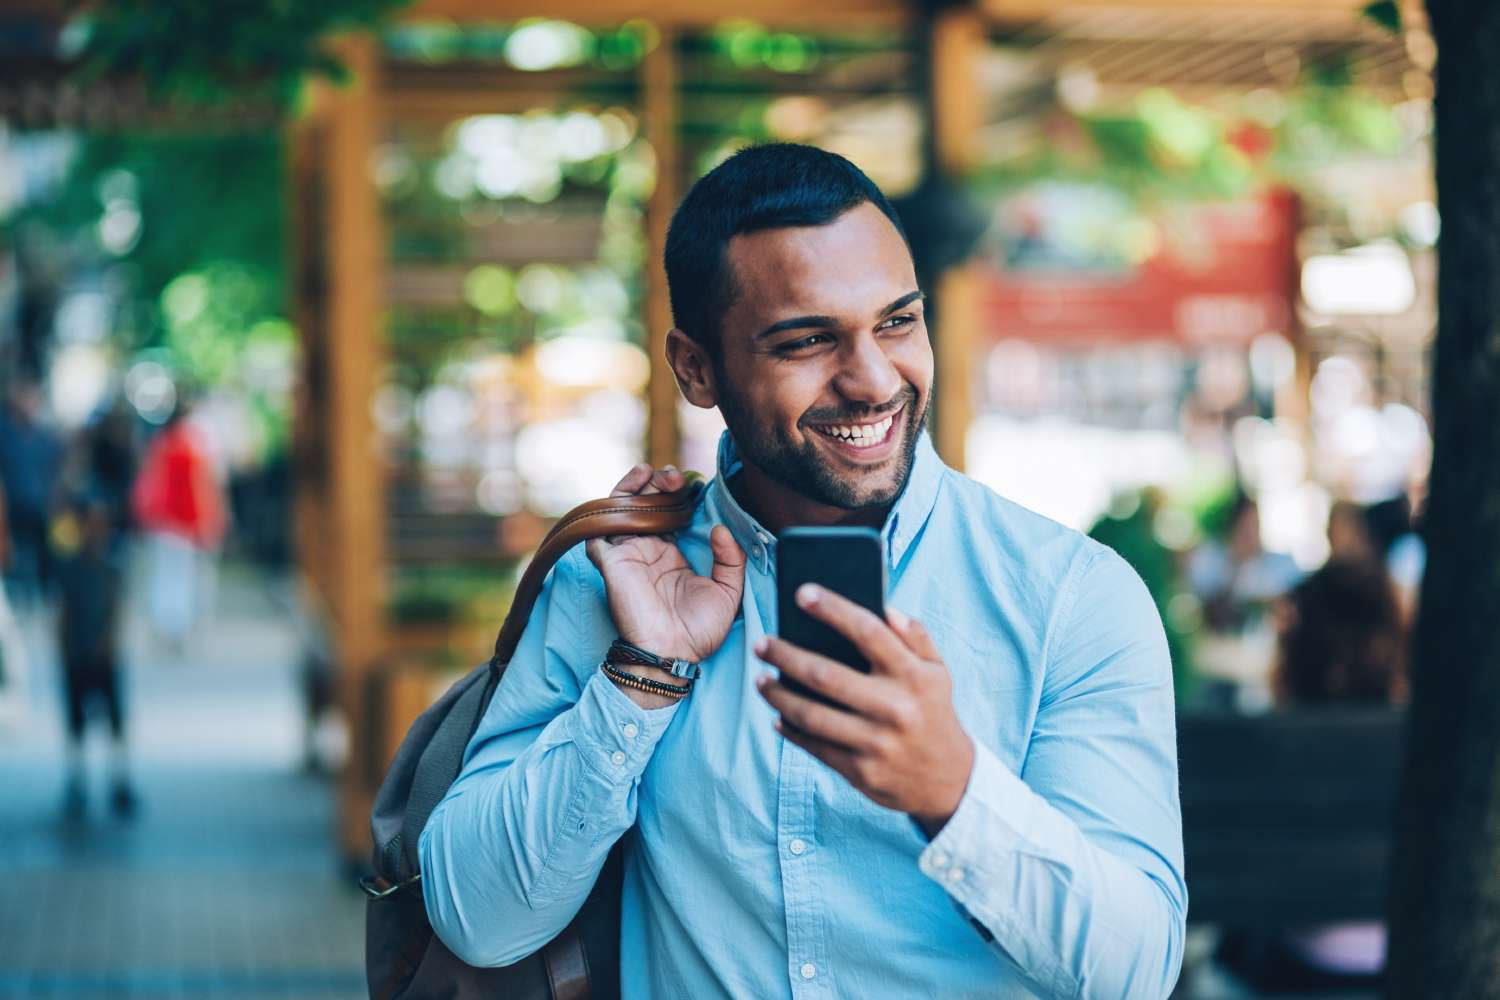 Man on smartphone considers data privacy concerns